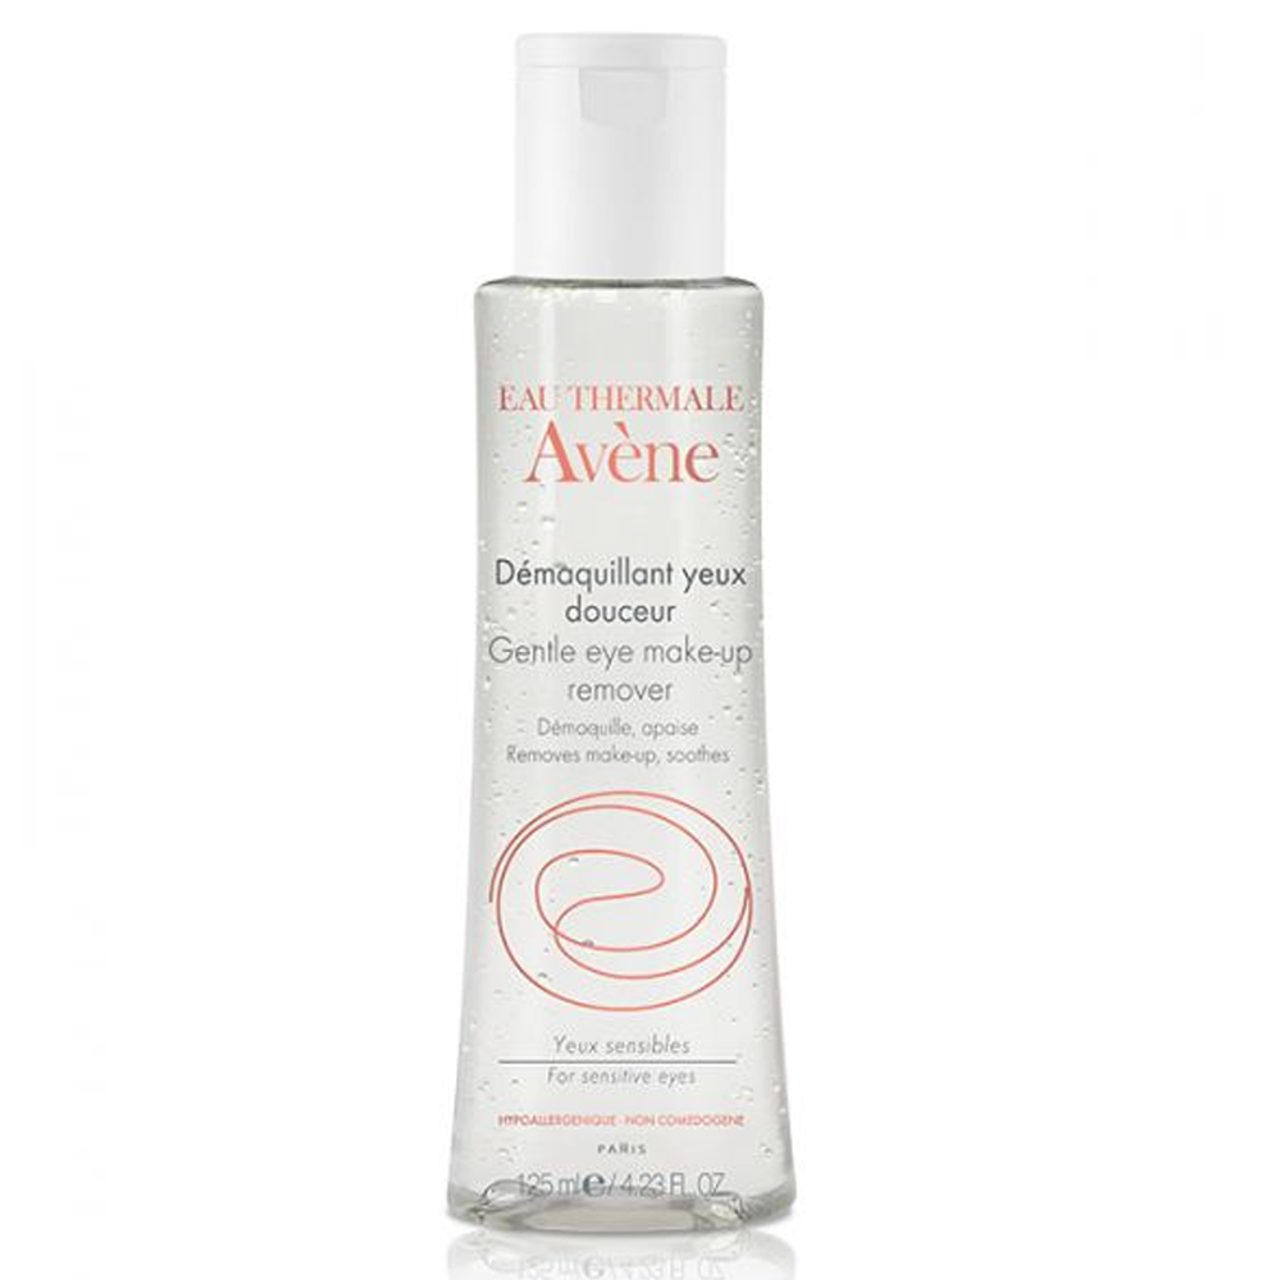 Avene Gentle Eye Make-Up Remover